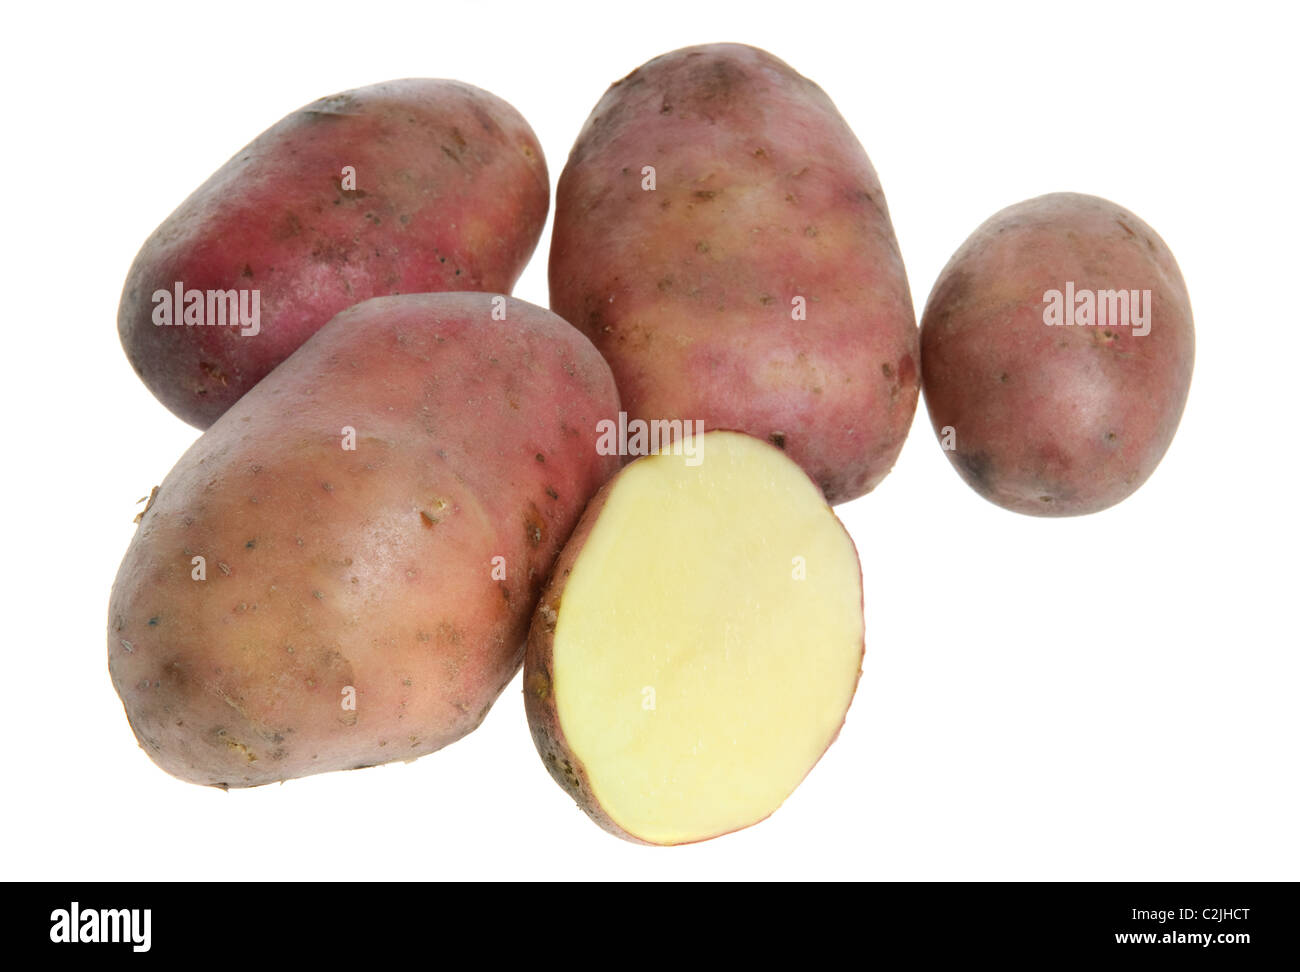 Five potatoes isolated on a white background - Stock Image